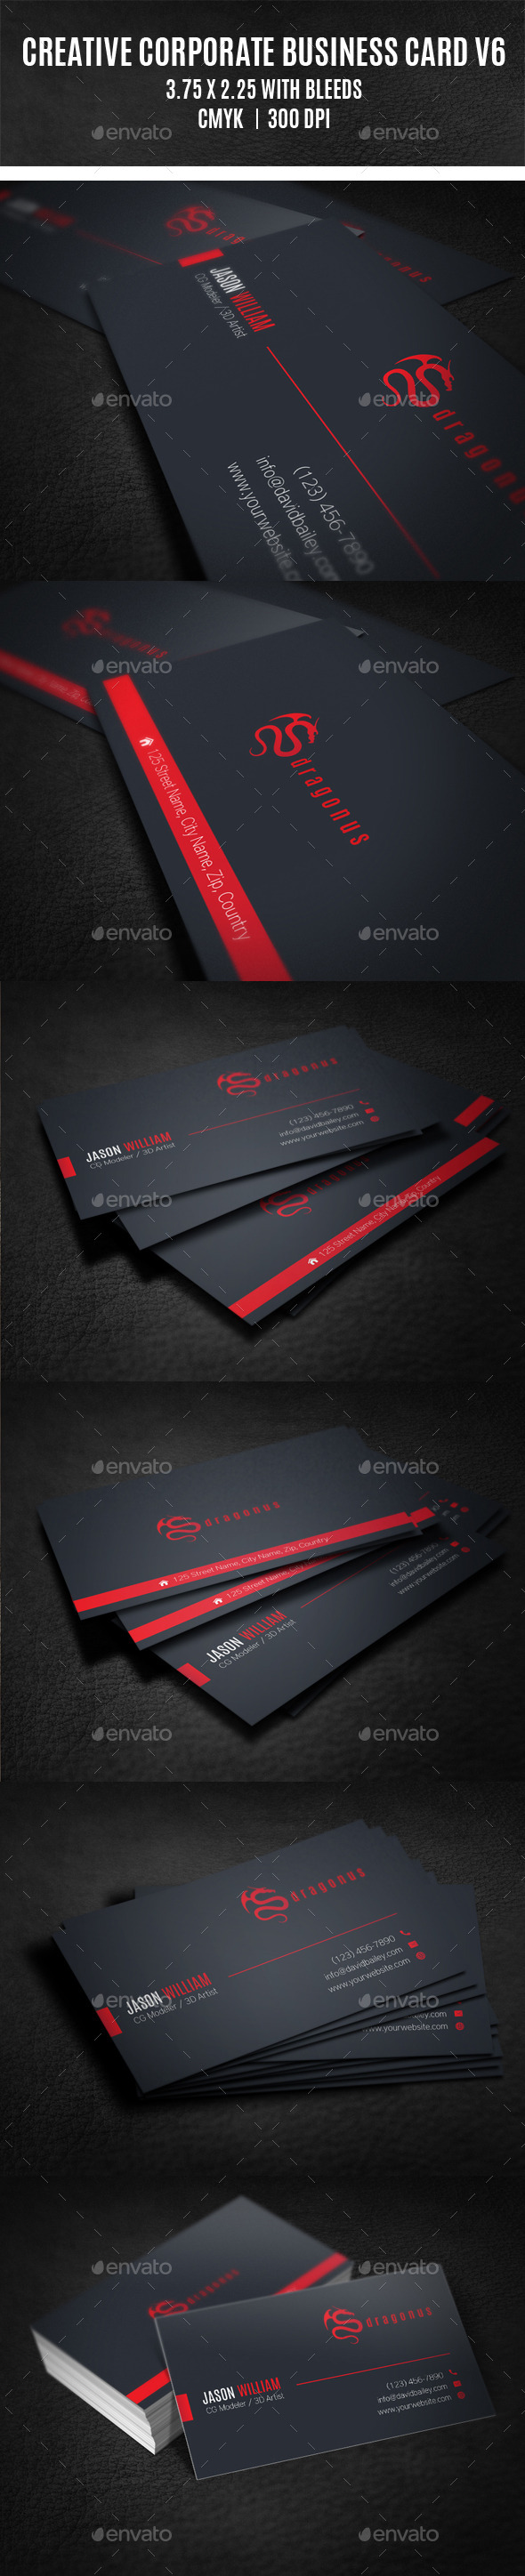 GraphicRiver Creative Corporate Business Card V6 8867007